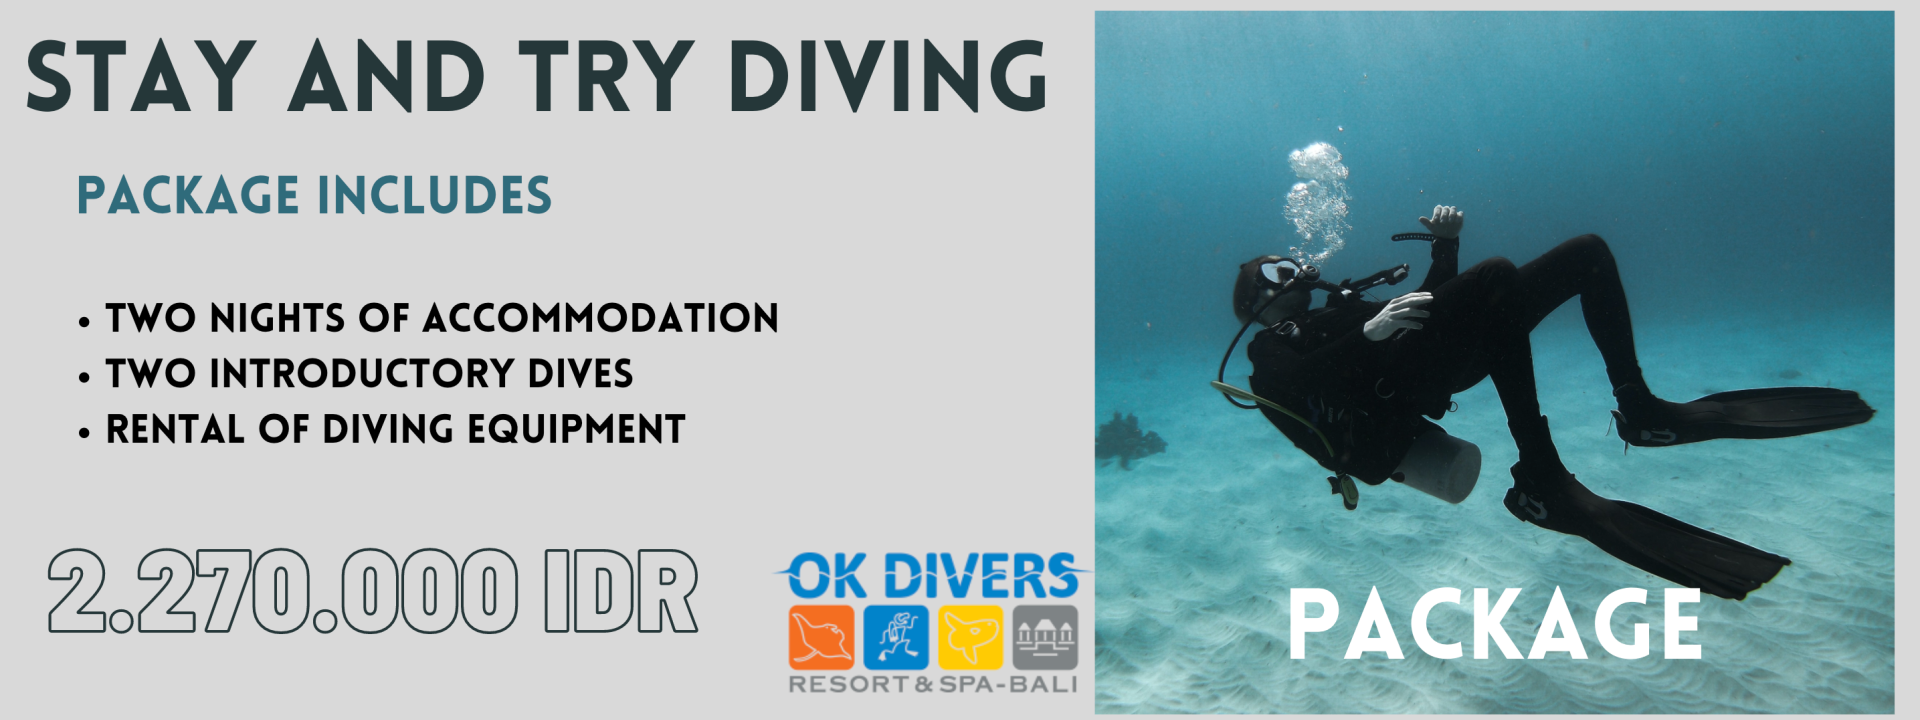 Stay and try diving package